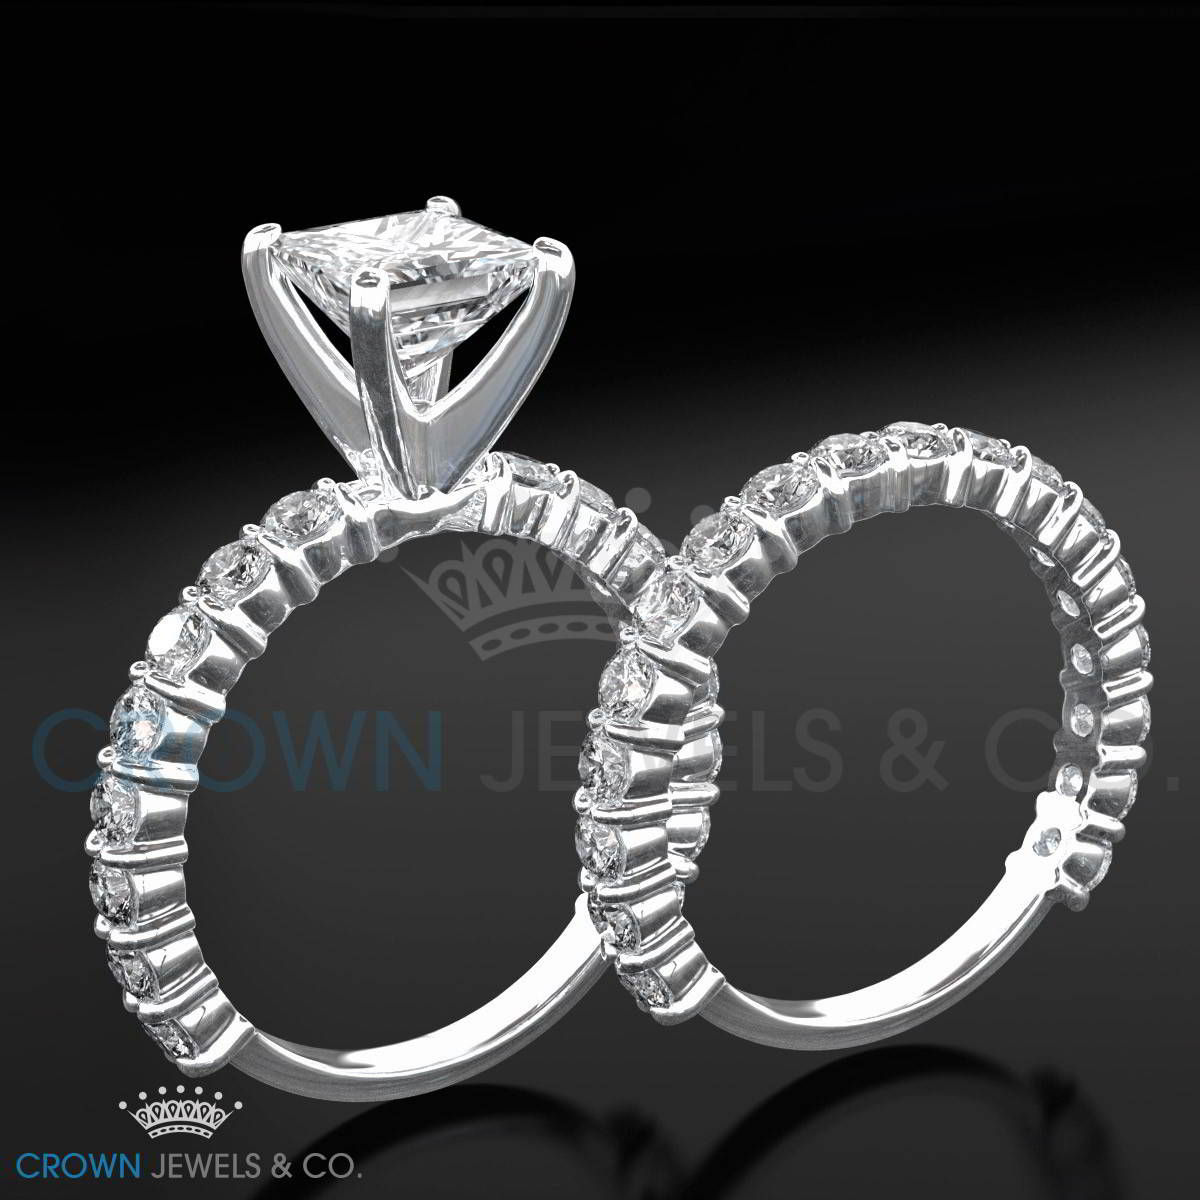 Eternity Ring Wedding Set: Diamond Engagement Ring Half Eternity Wedding Band Set 3